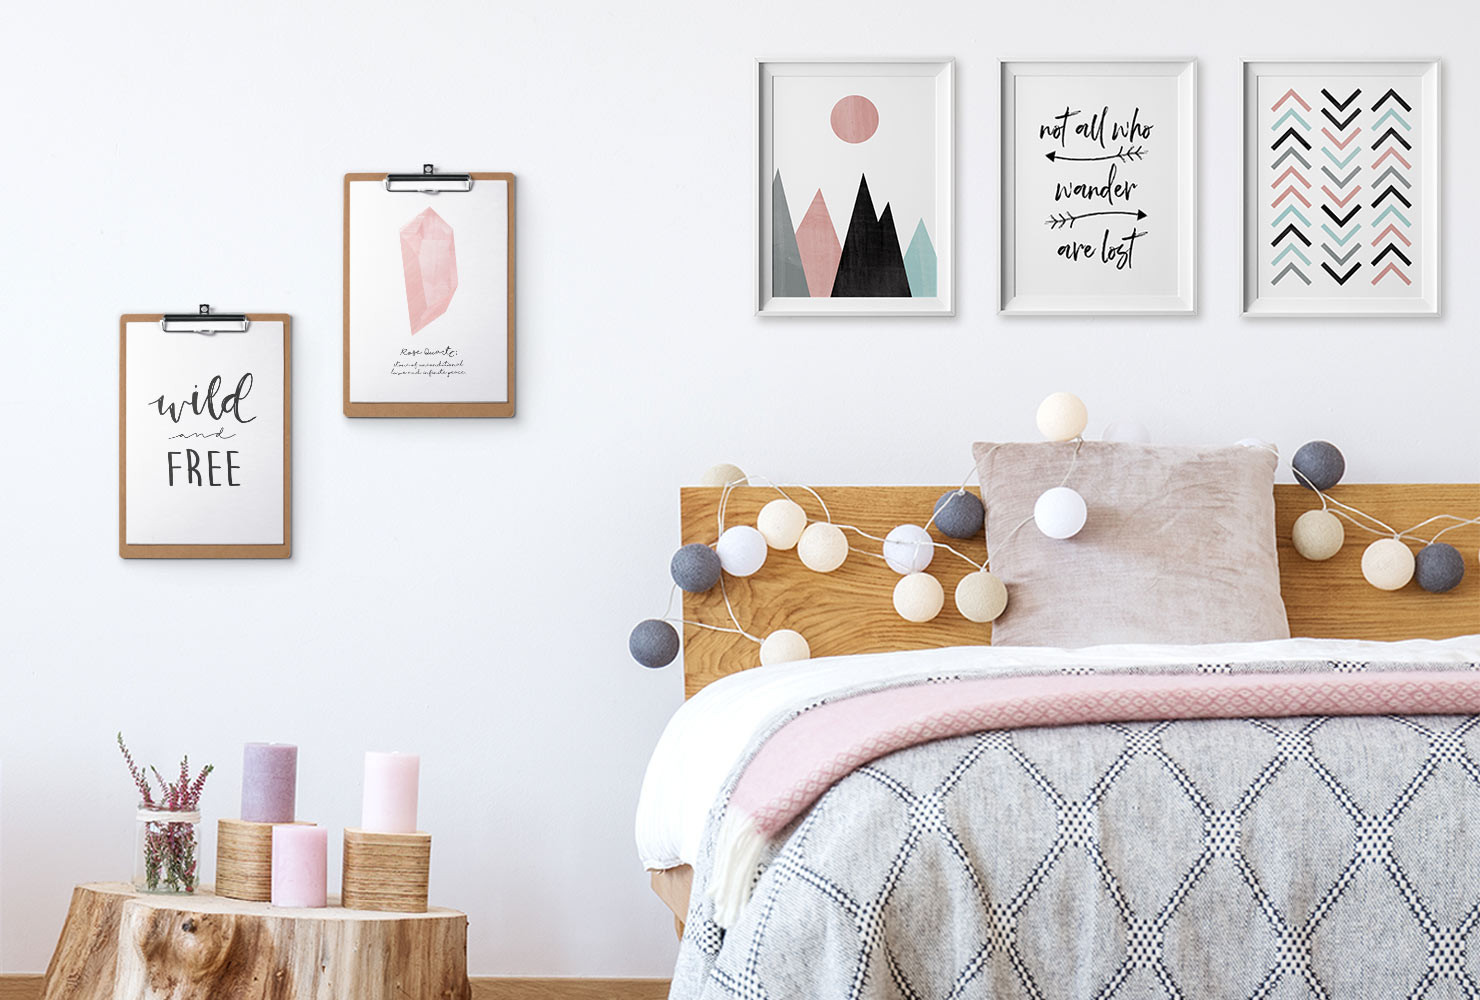 Best ideas about Easy DIY Room Decor . Save or Pin 24 DIY Bedroom Decor Ideas To Inspire You With Printables Now.